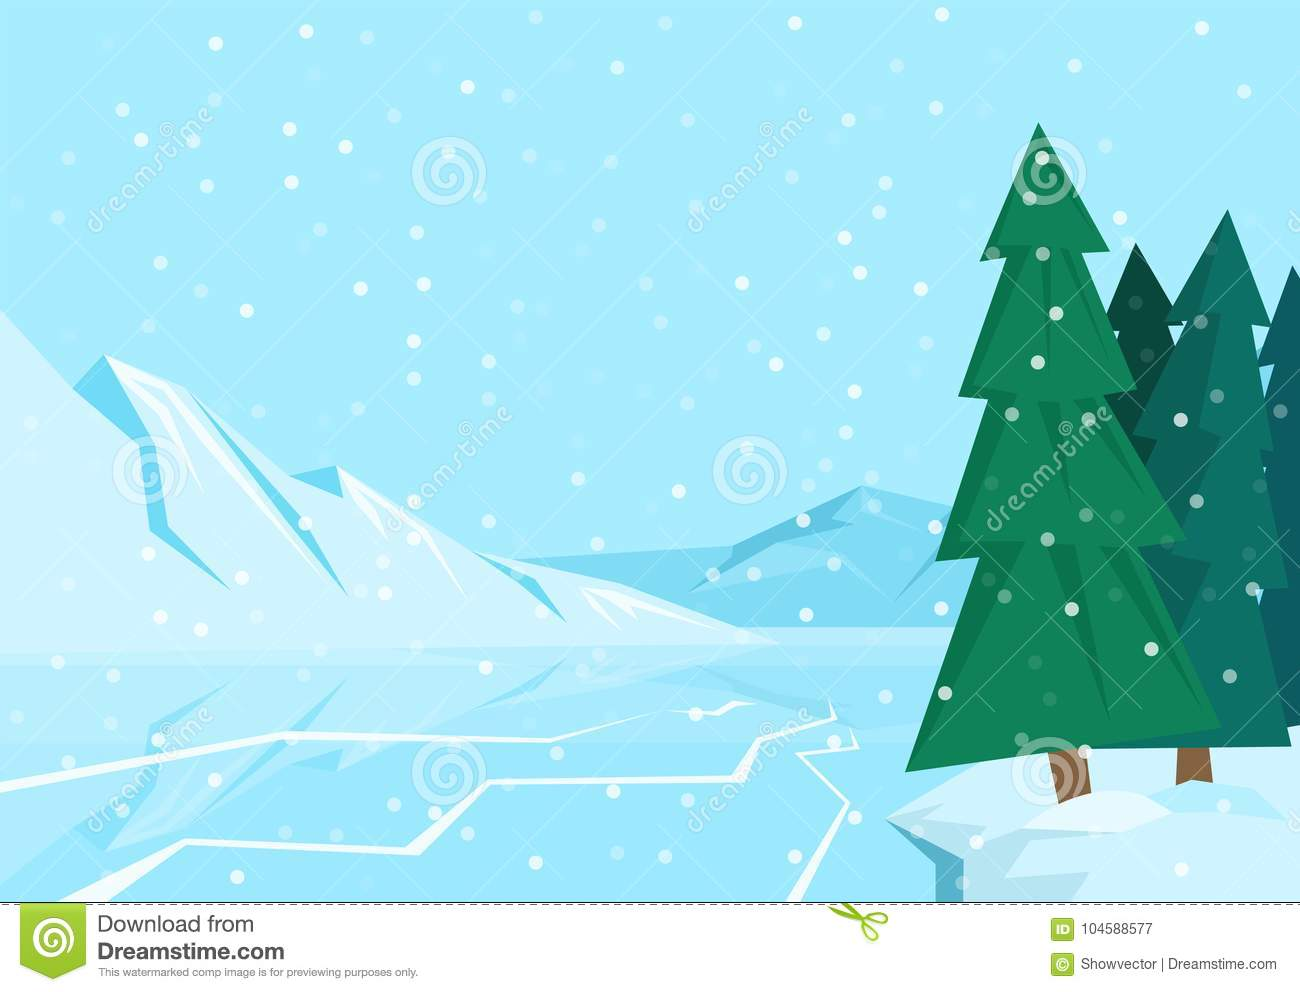 Winter Landscape With Christmas Tree Mountain Frozen Nature Wallpaper Beautiful Natural Vector Illustration Stock Vector Illustration Of Christmas Snowfall 104588577